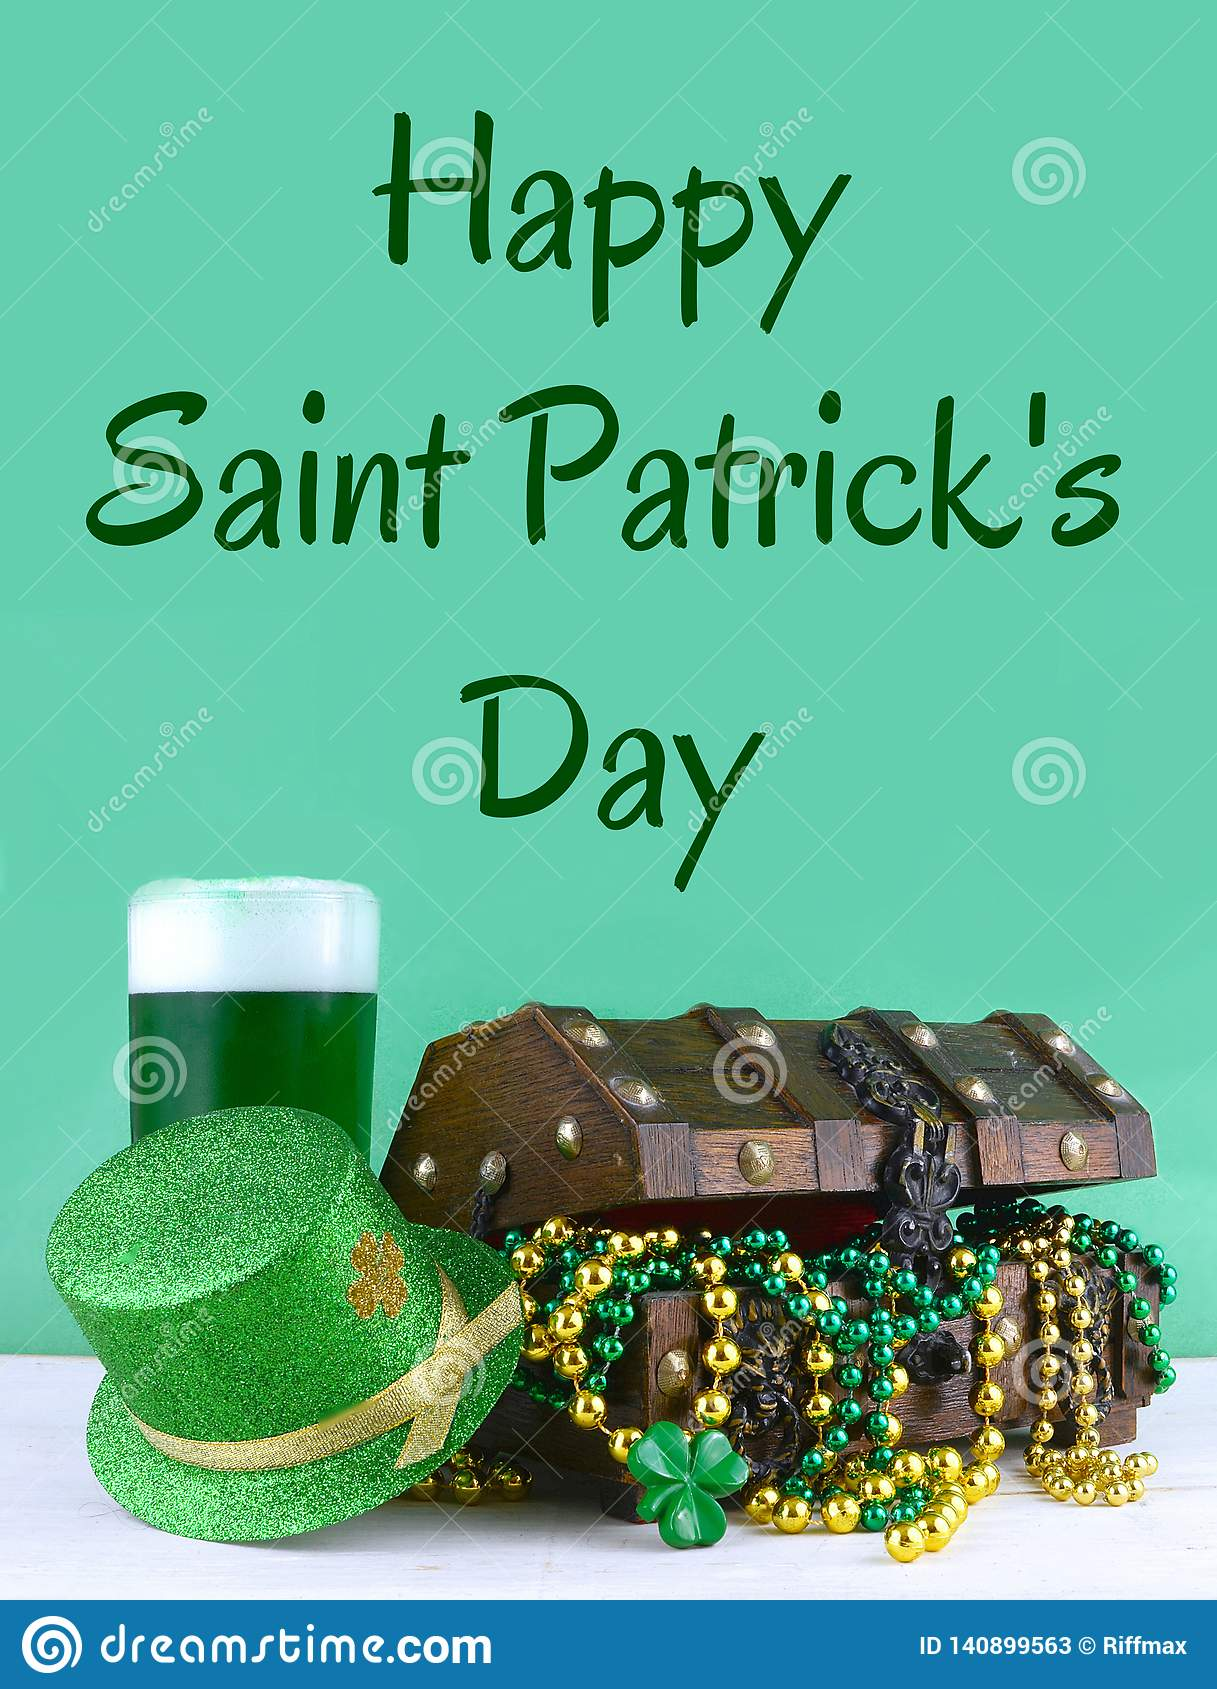 Image for Saint Patrick`s Day on March 17th. Treasure chest to symbolize luck and wealth. Vertical image.